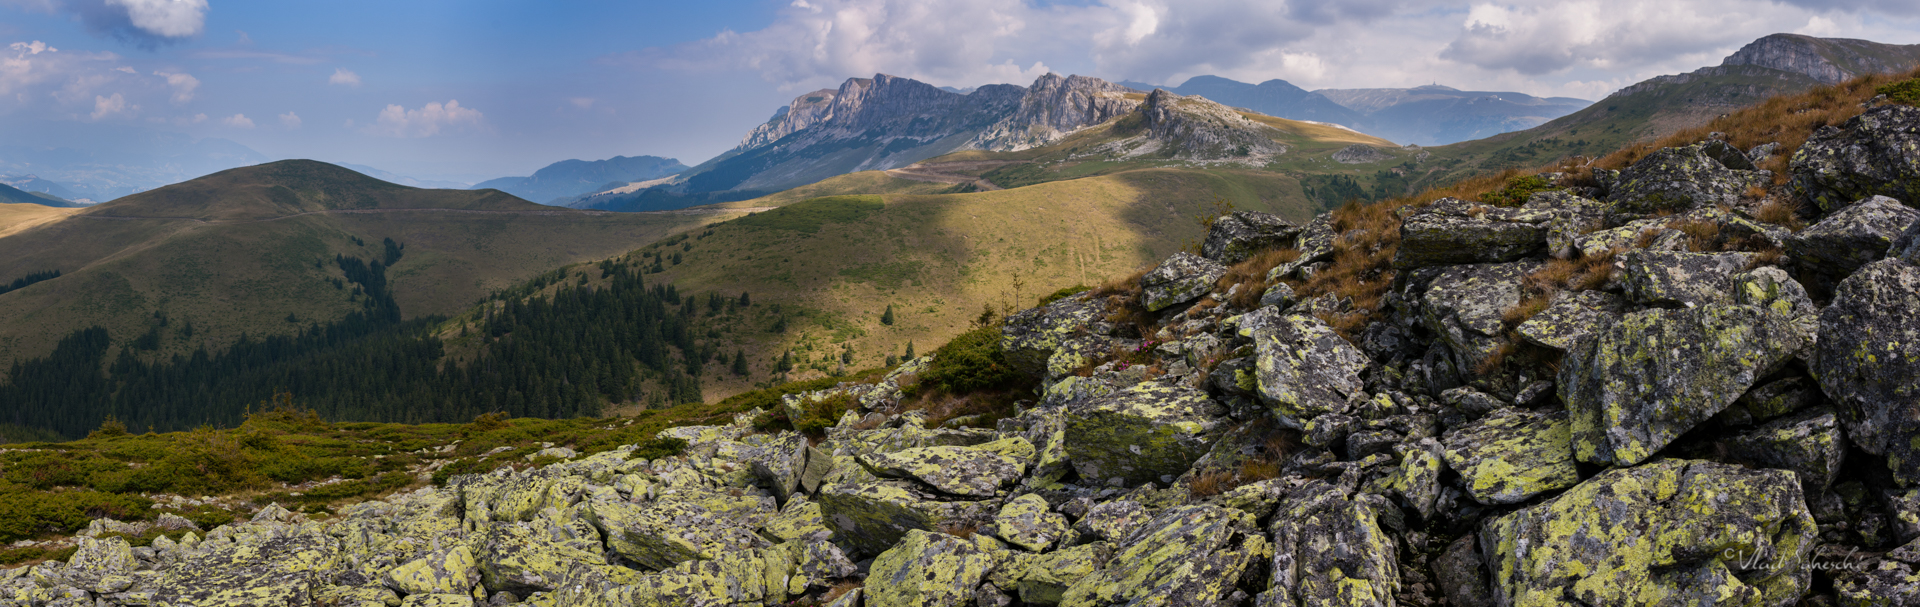 Bucegi Mountains, The Carpathians Romania